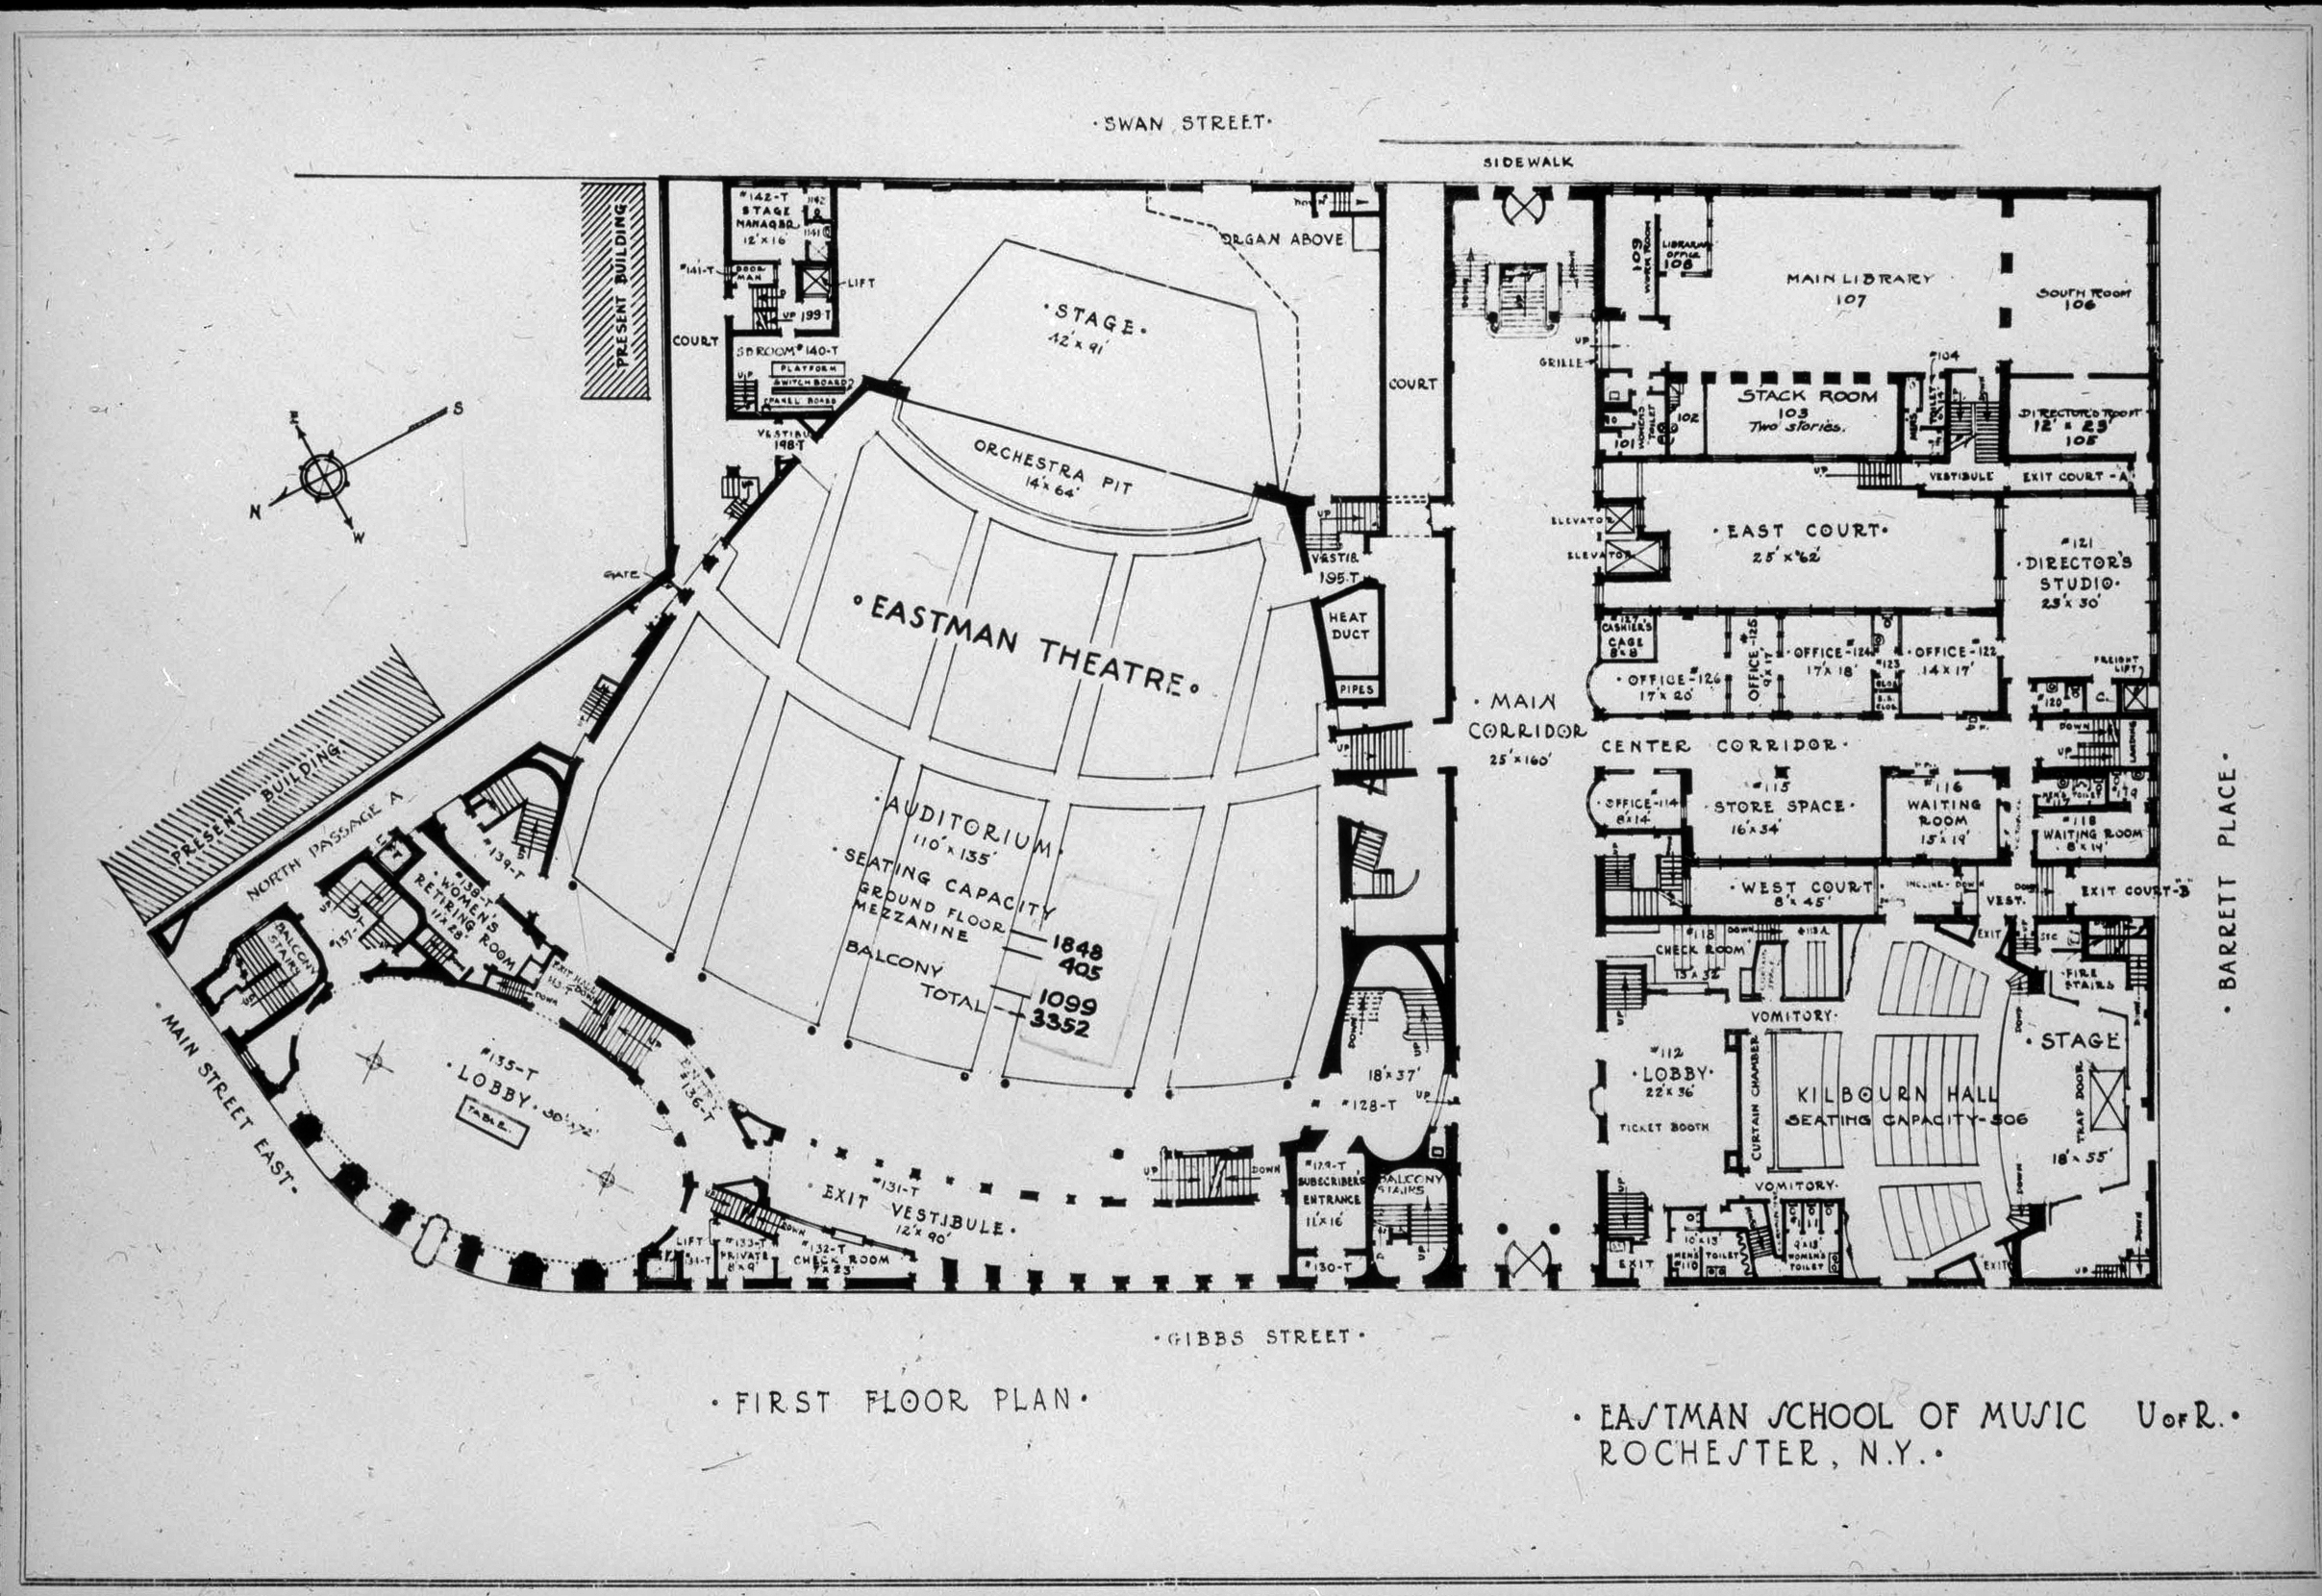 Eastman Theatre floor plan